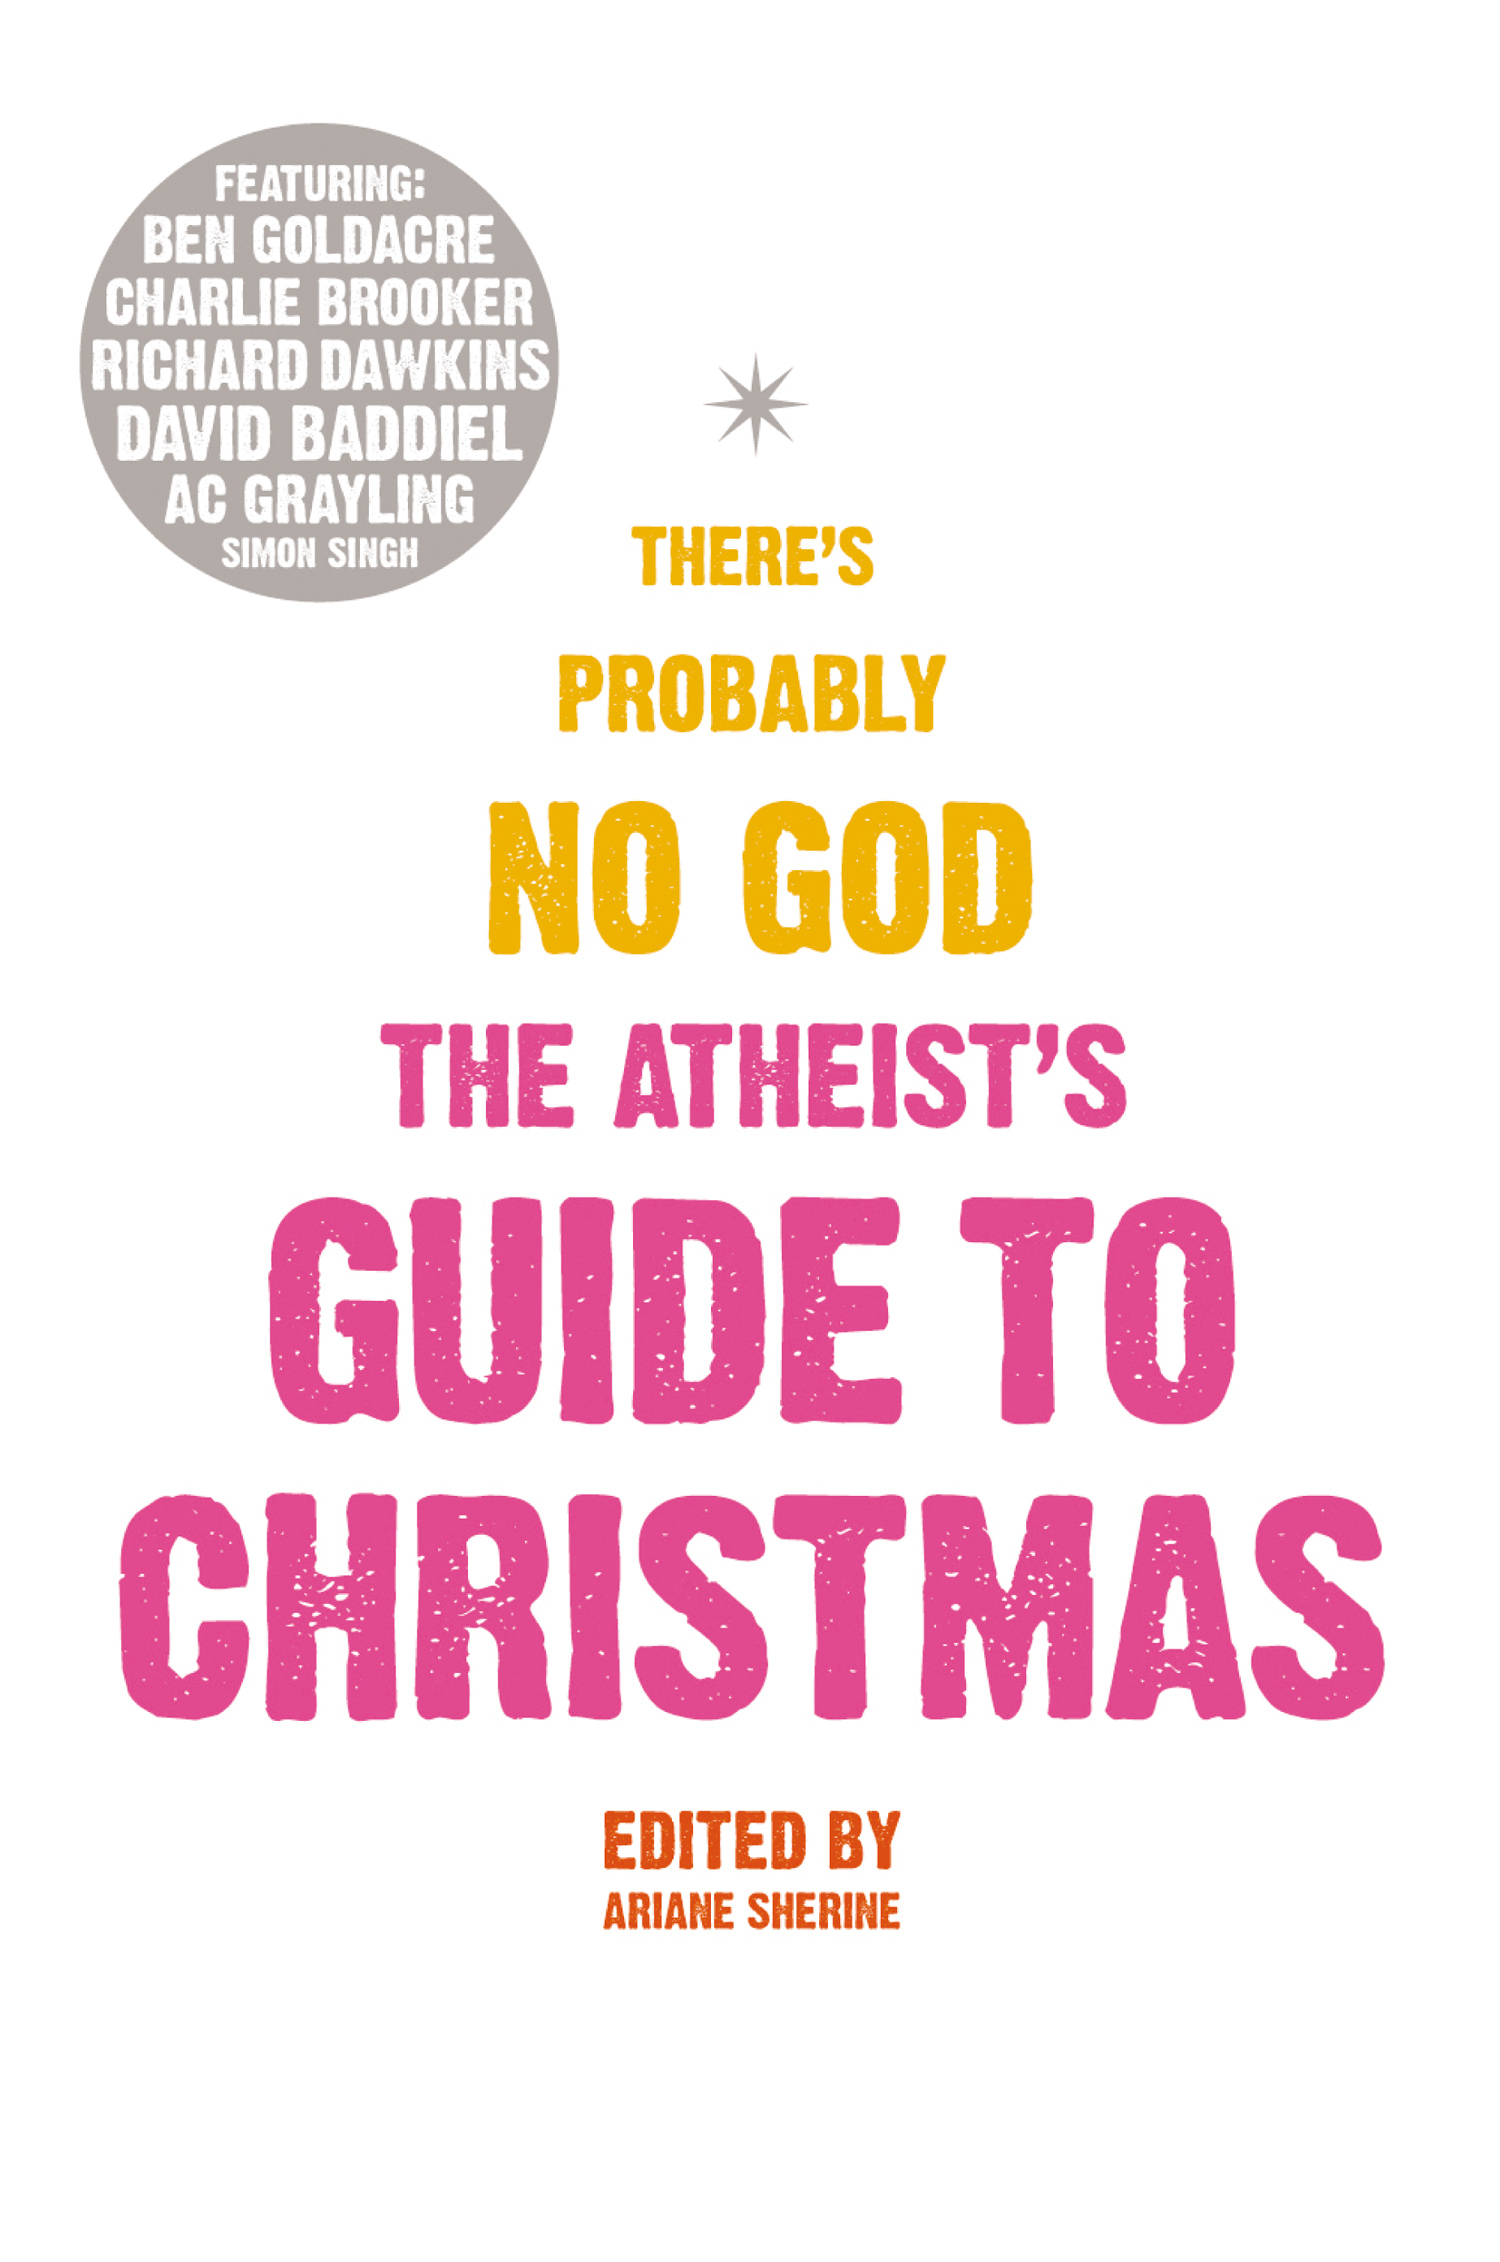 The Atheist?s Guide to Christmas